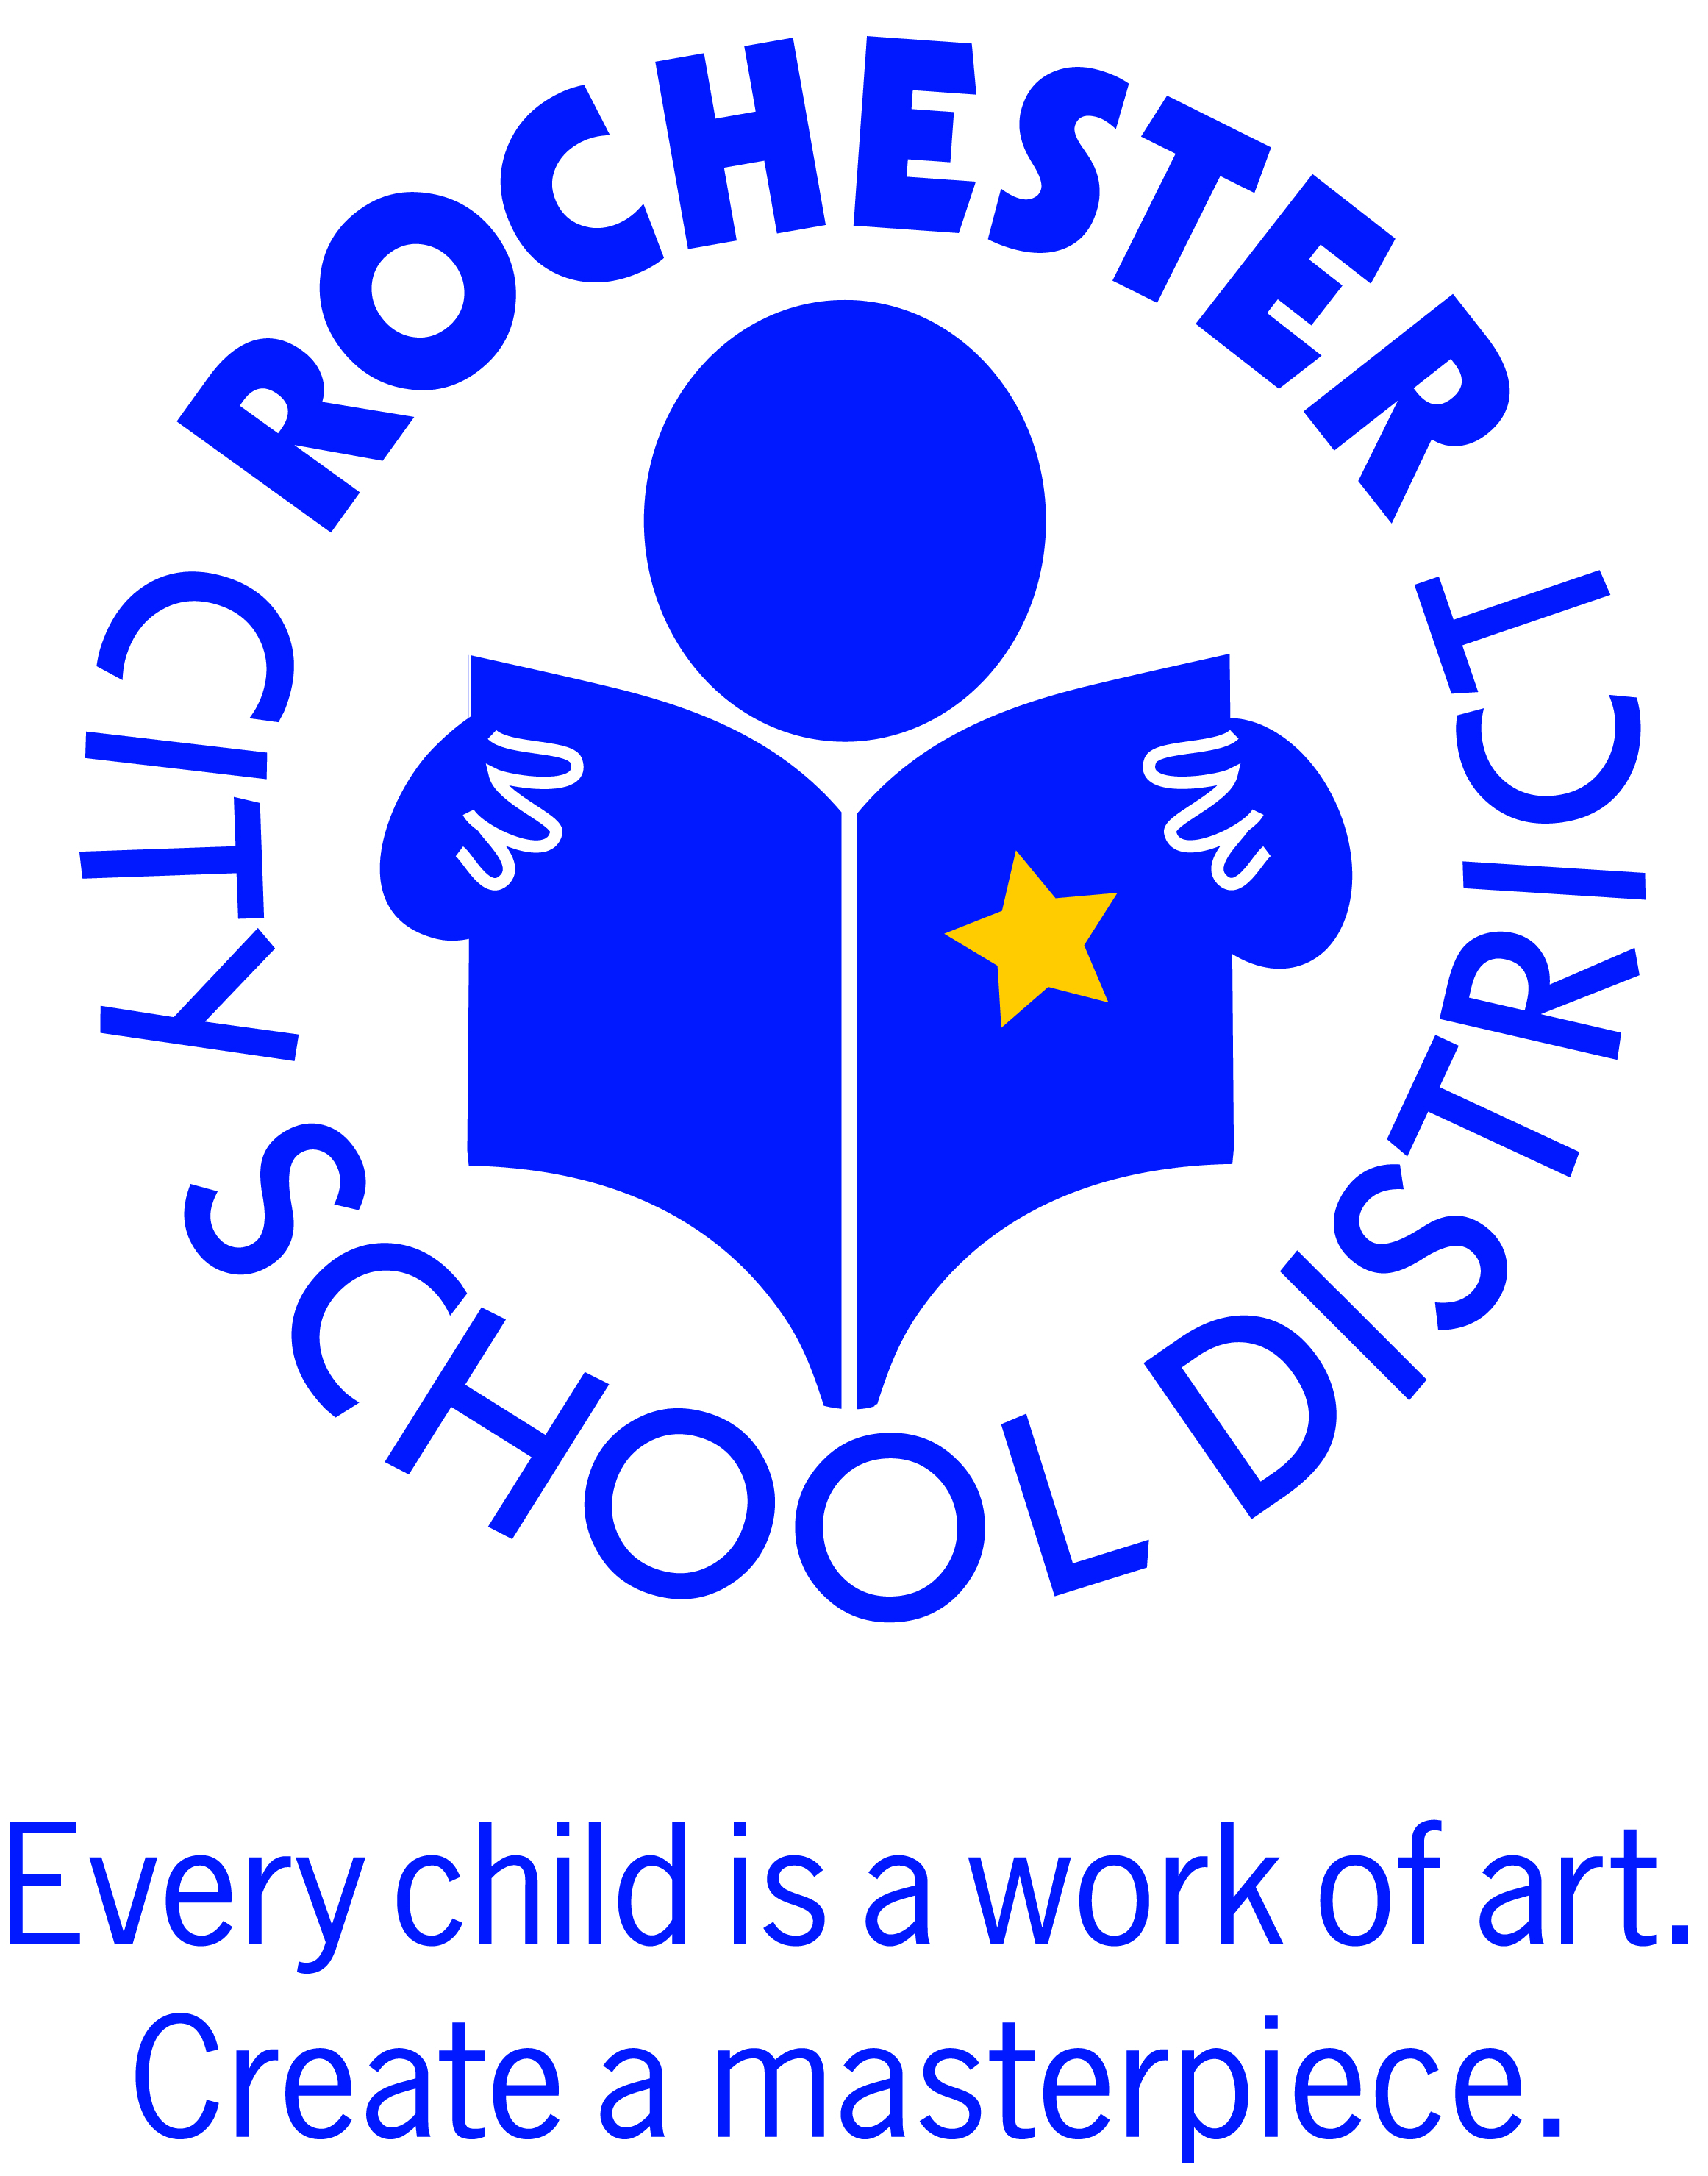 City school logo